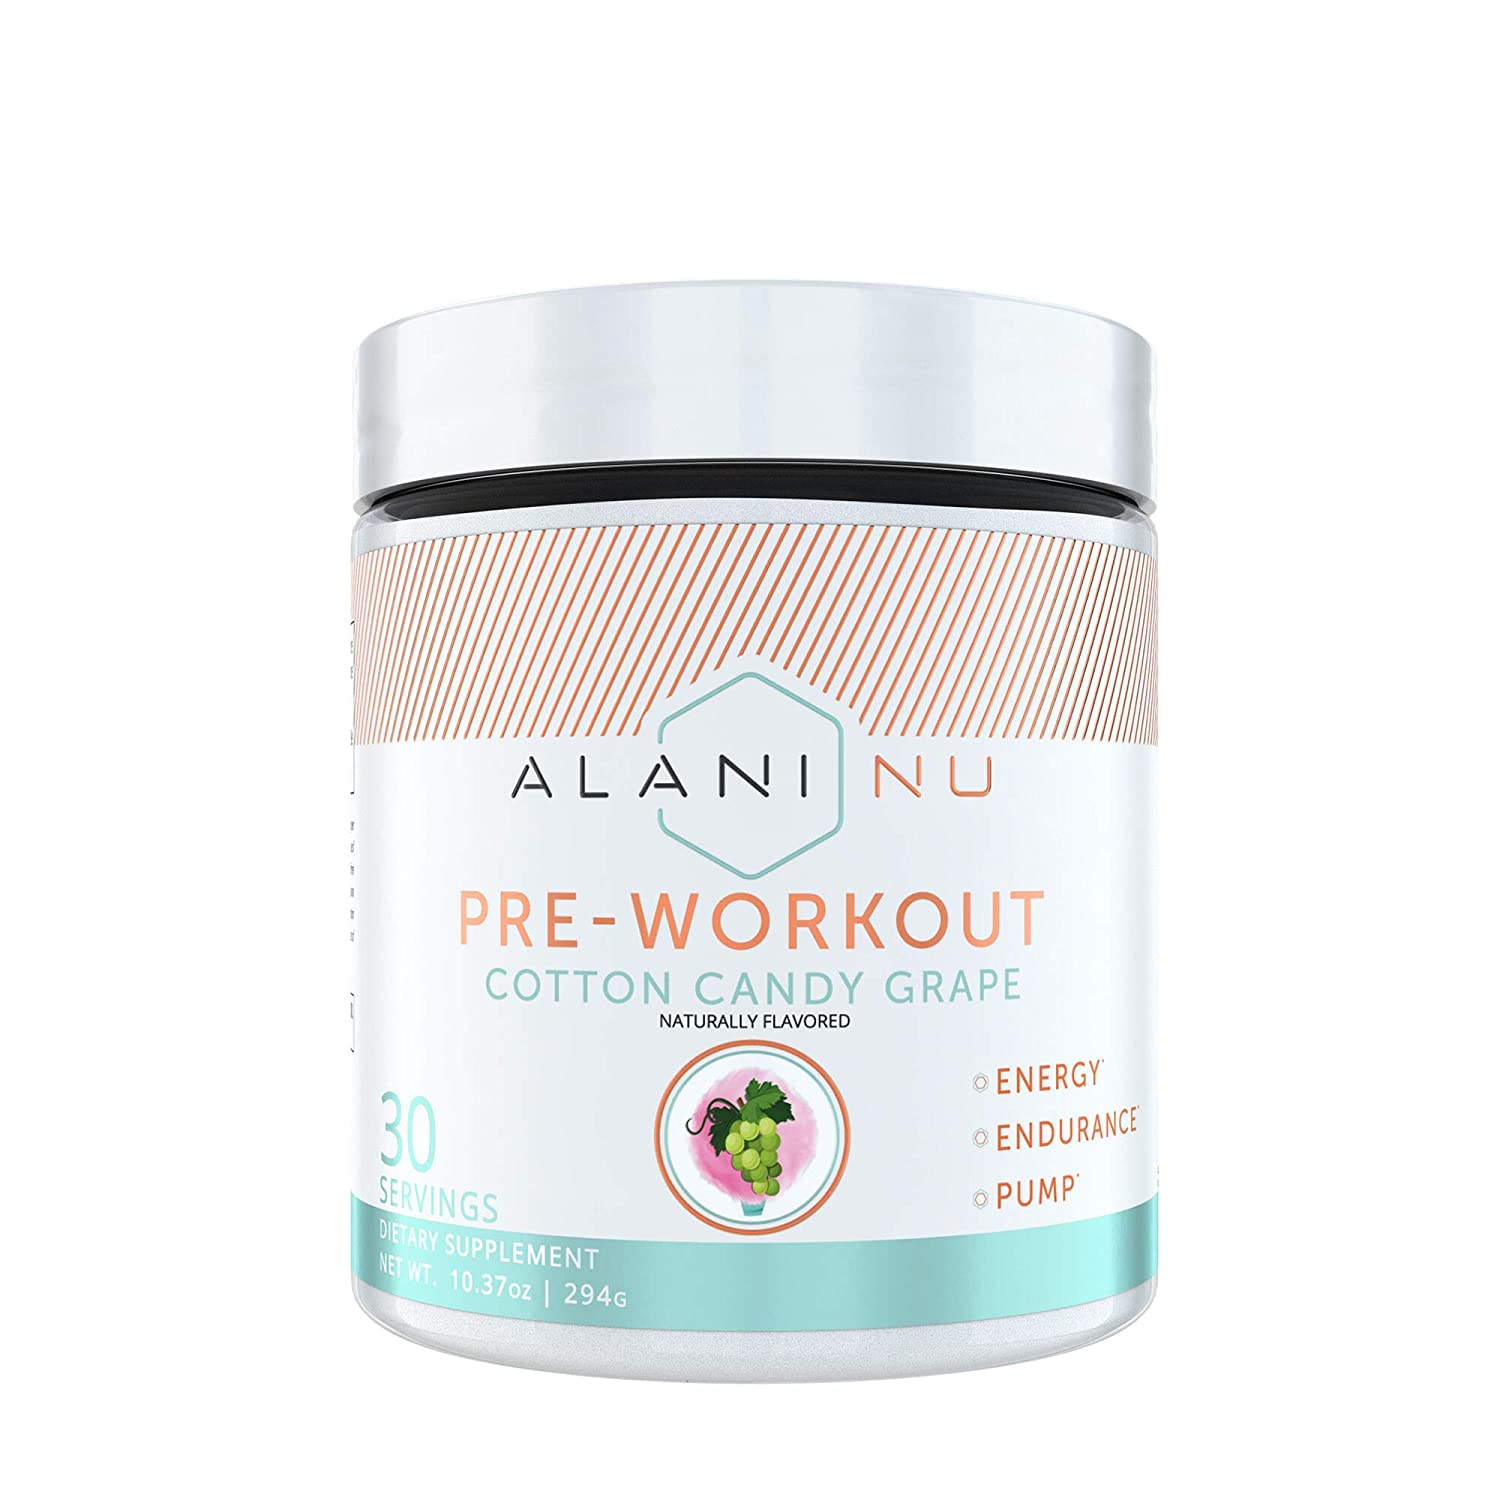 Alani Nu Pre-Workout – Cotton Candy Grape